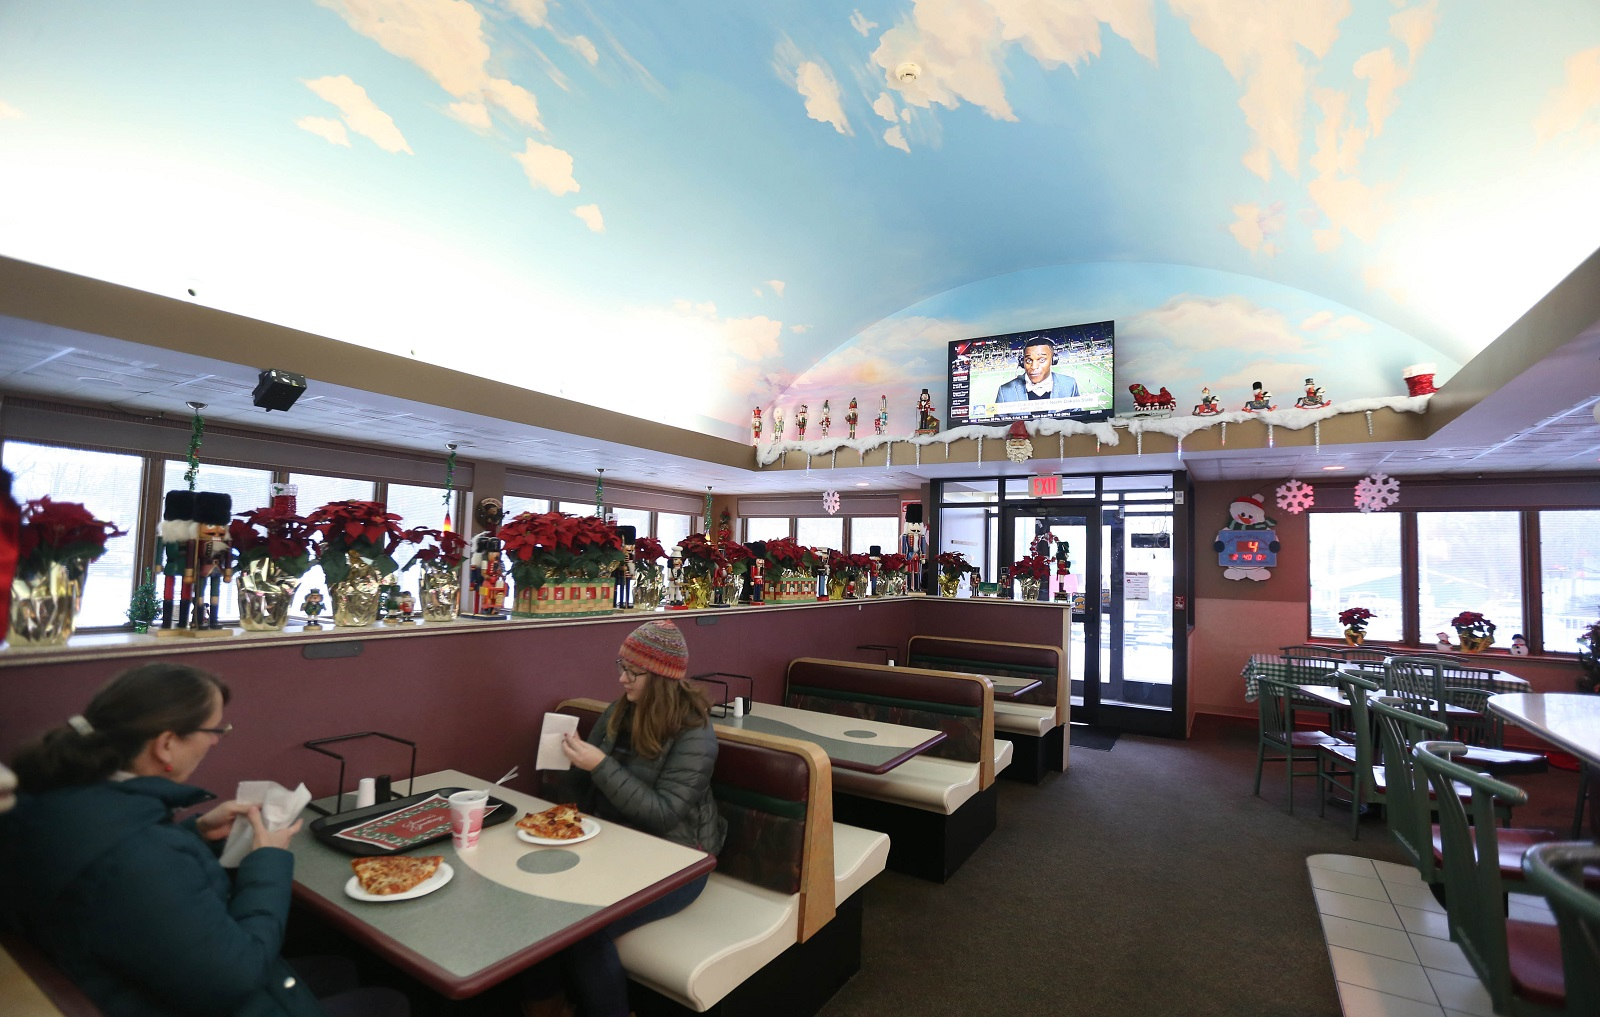 A look inside Brunner's Eatery, with its eye-catching ceiling. (Sharon Cantillon/Buffalo News)